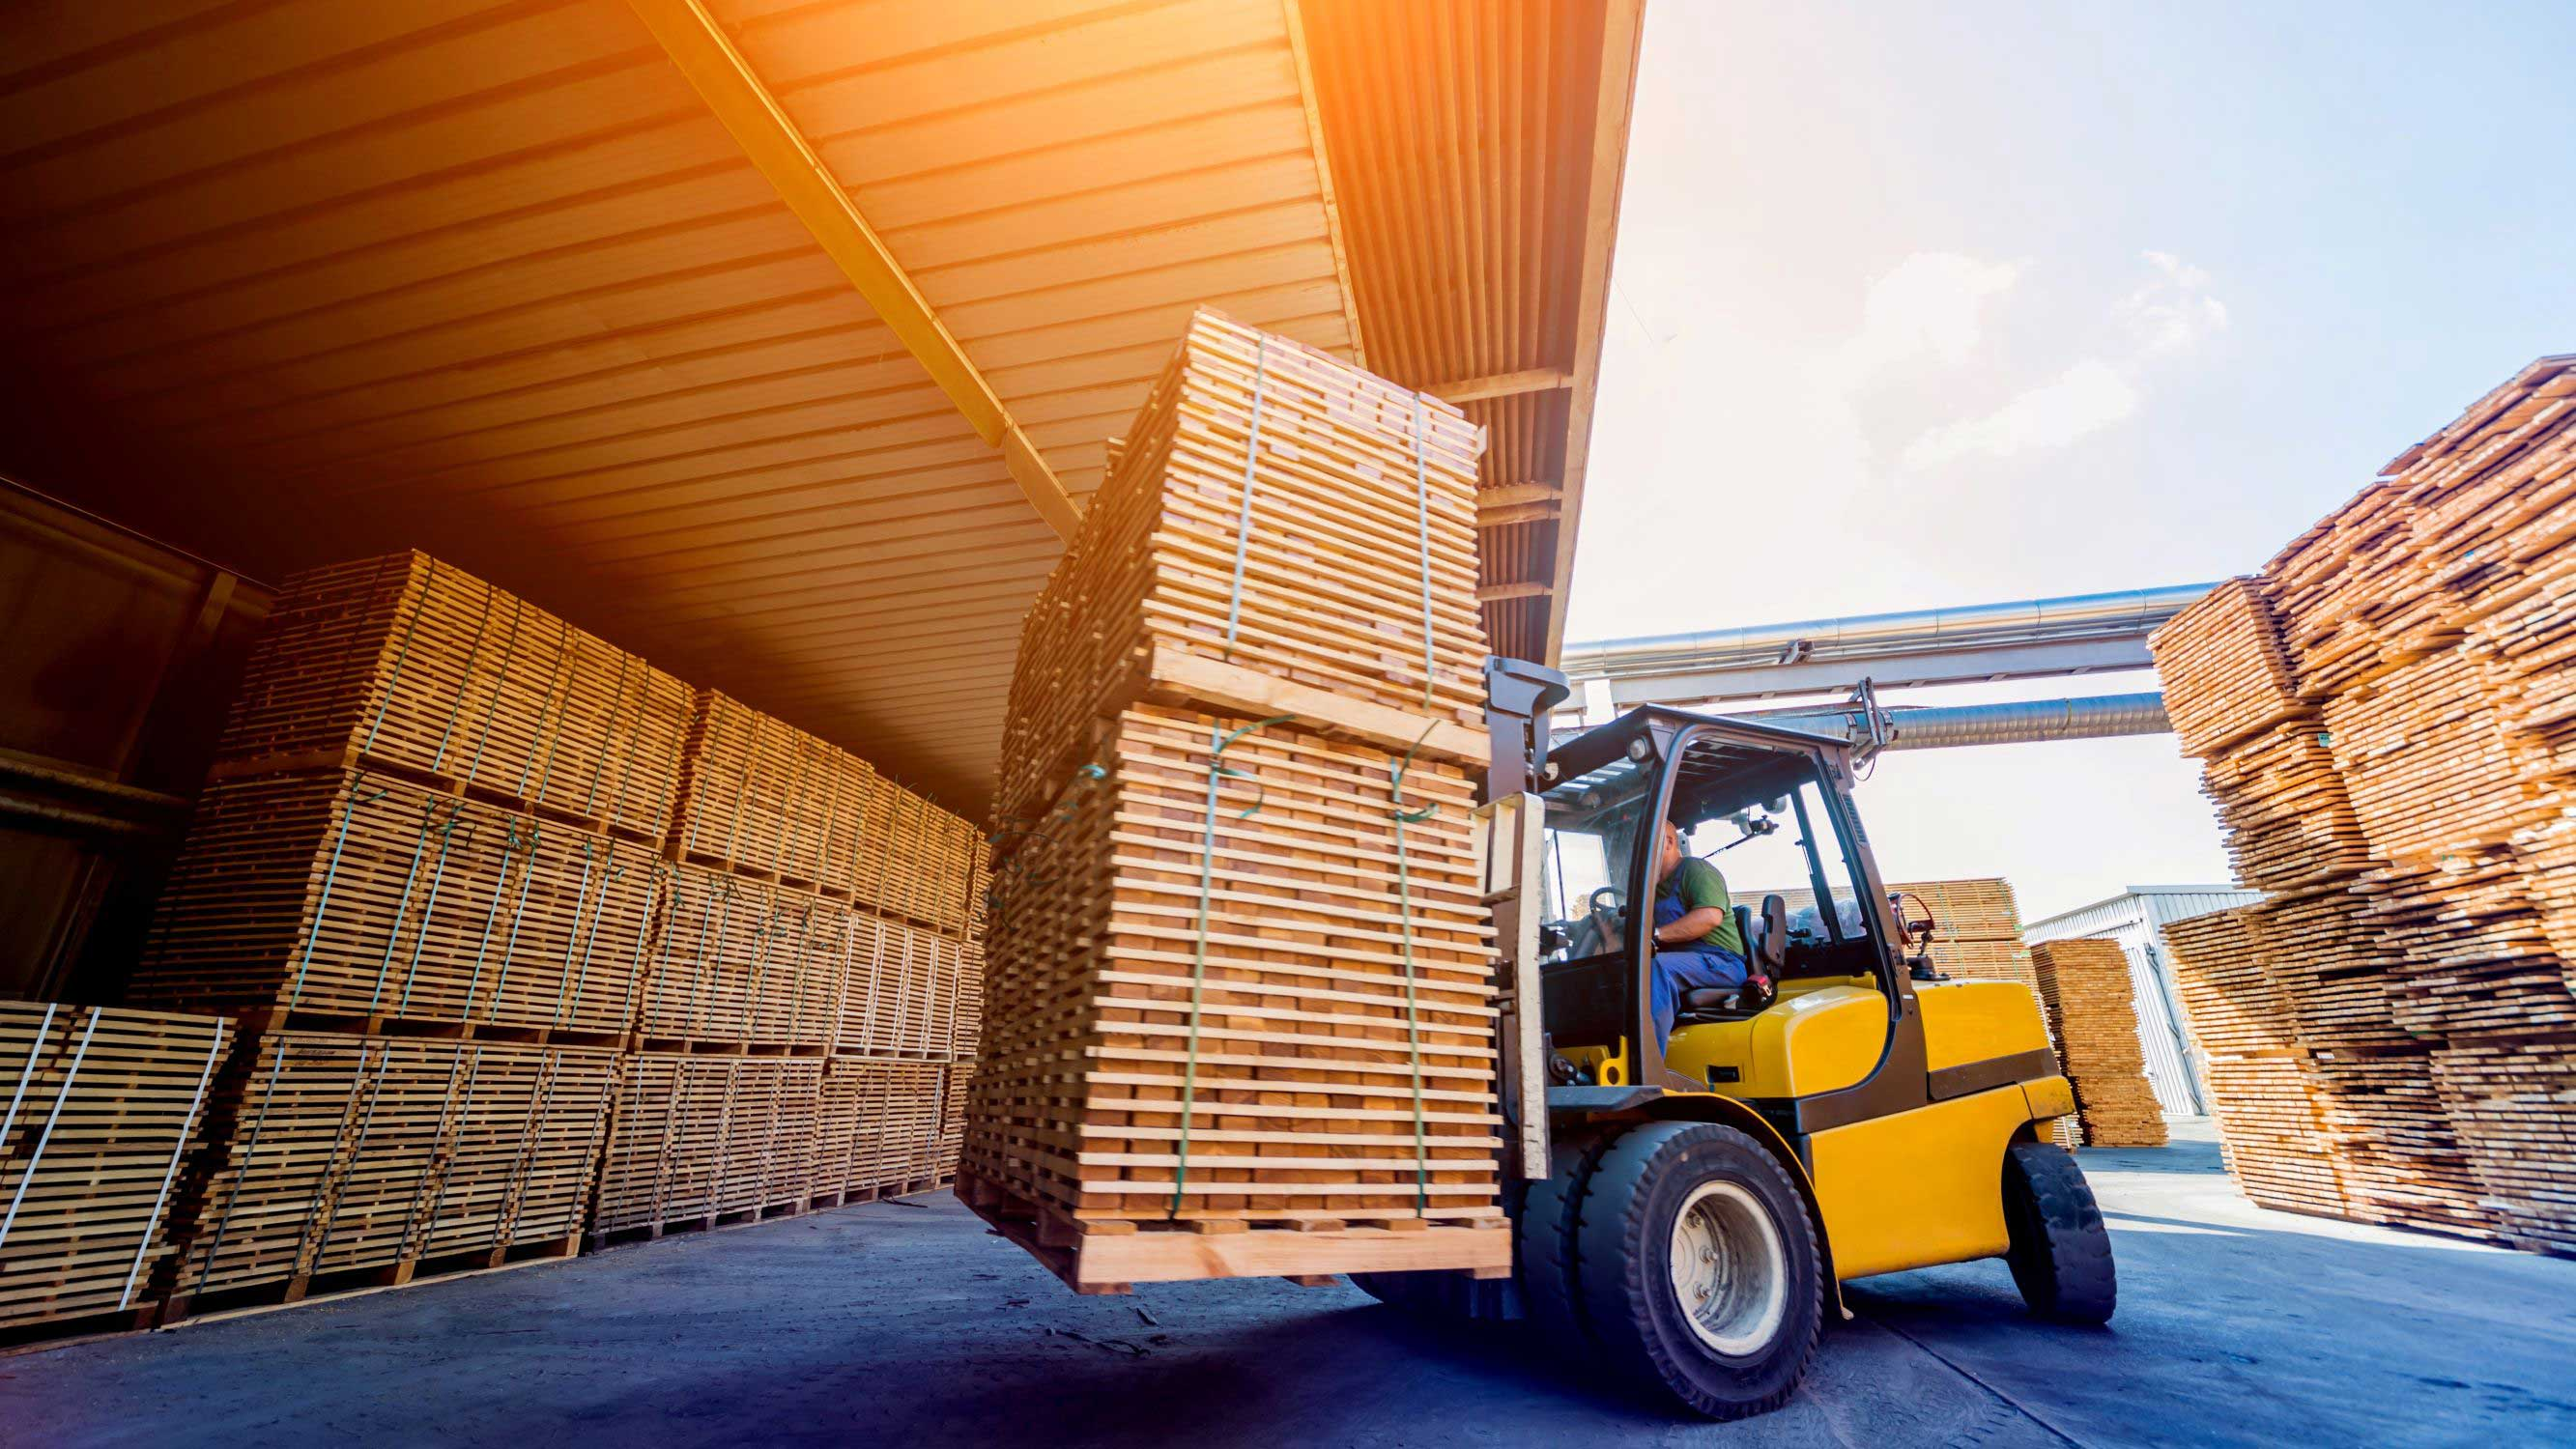 7 Questions to Answer Before Buying a Forklift